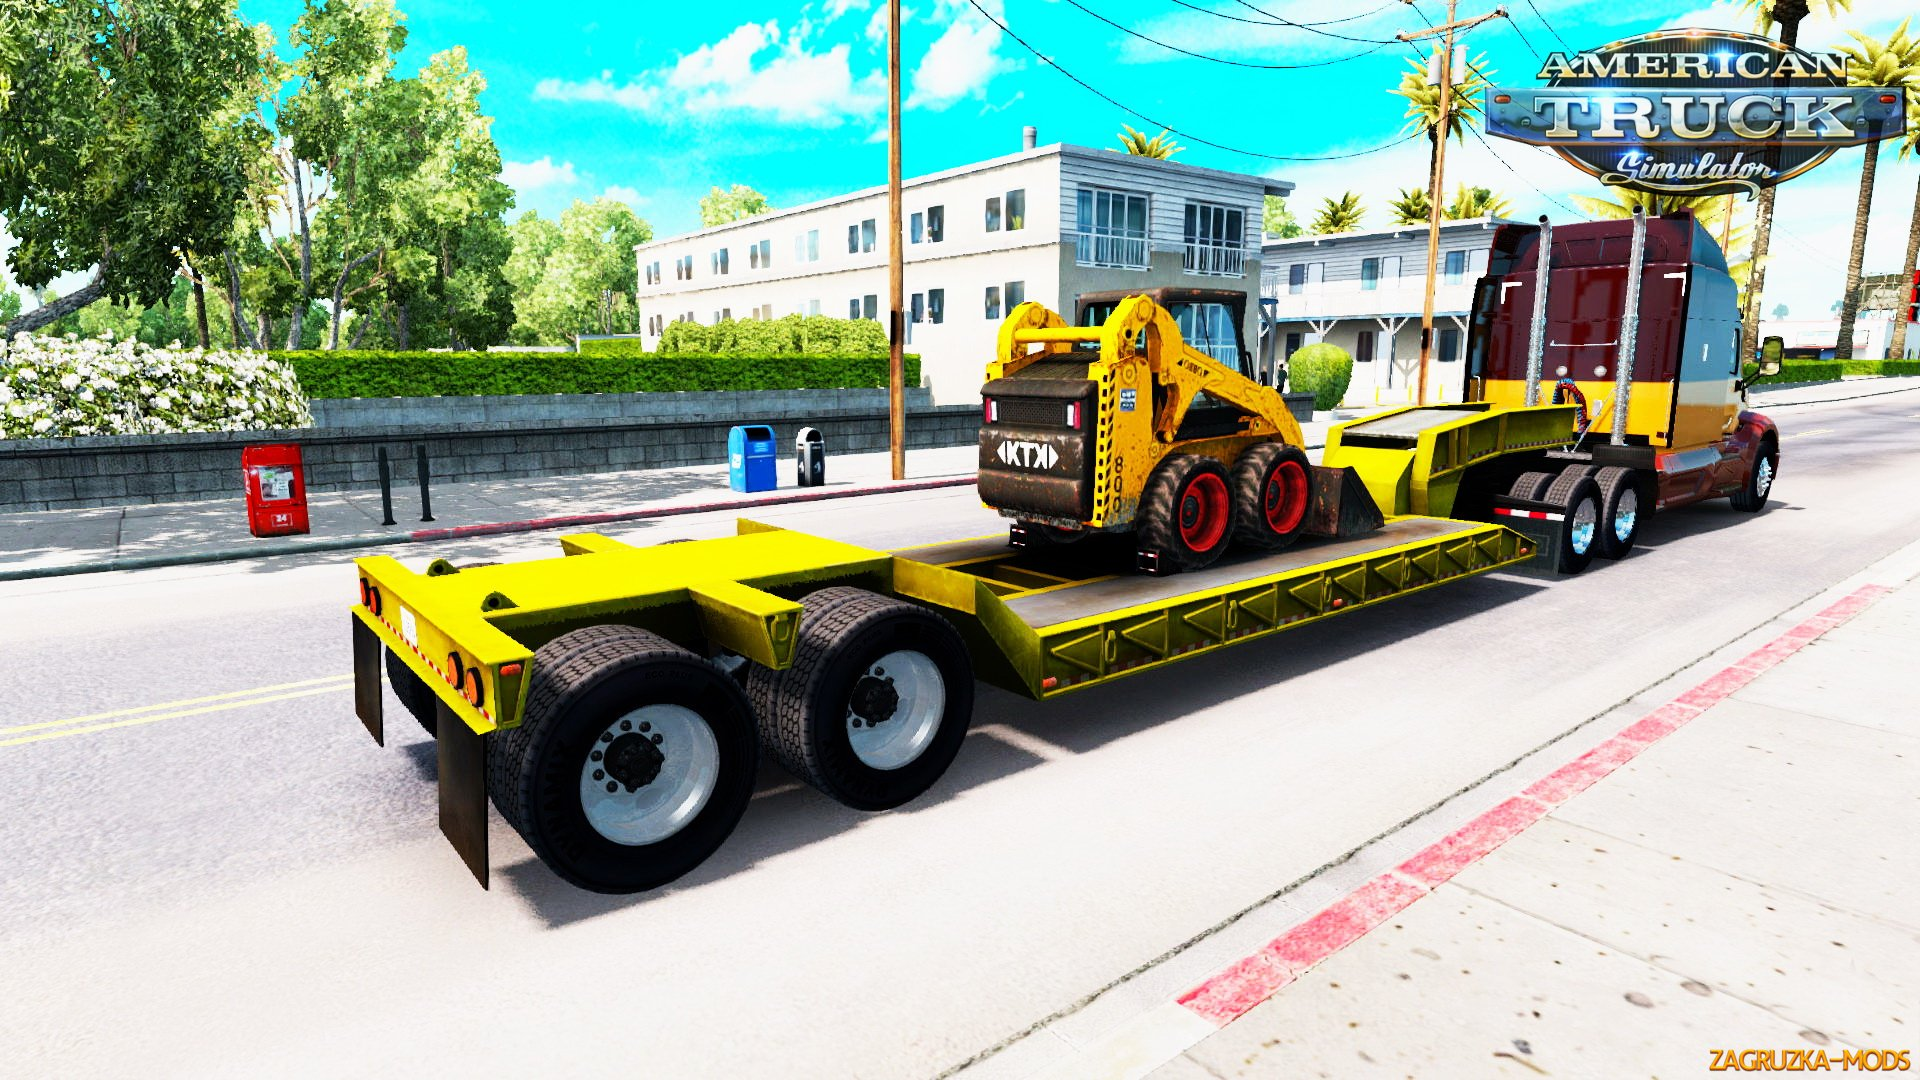 Trailer Lowboy Bobcat 800 v1.0 by pit19169 for ATS